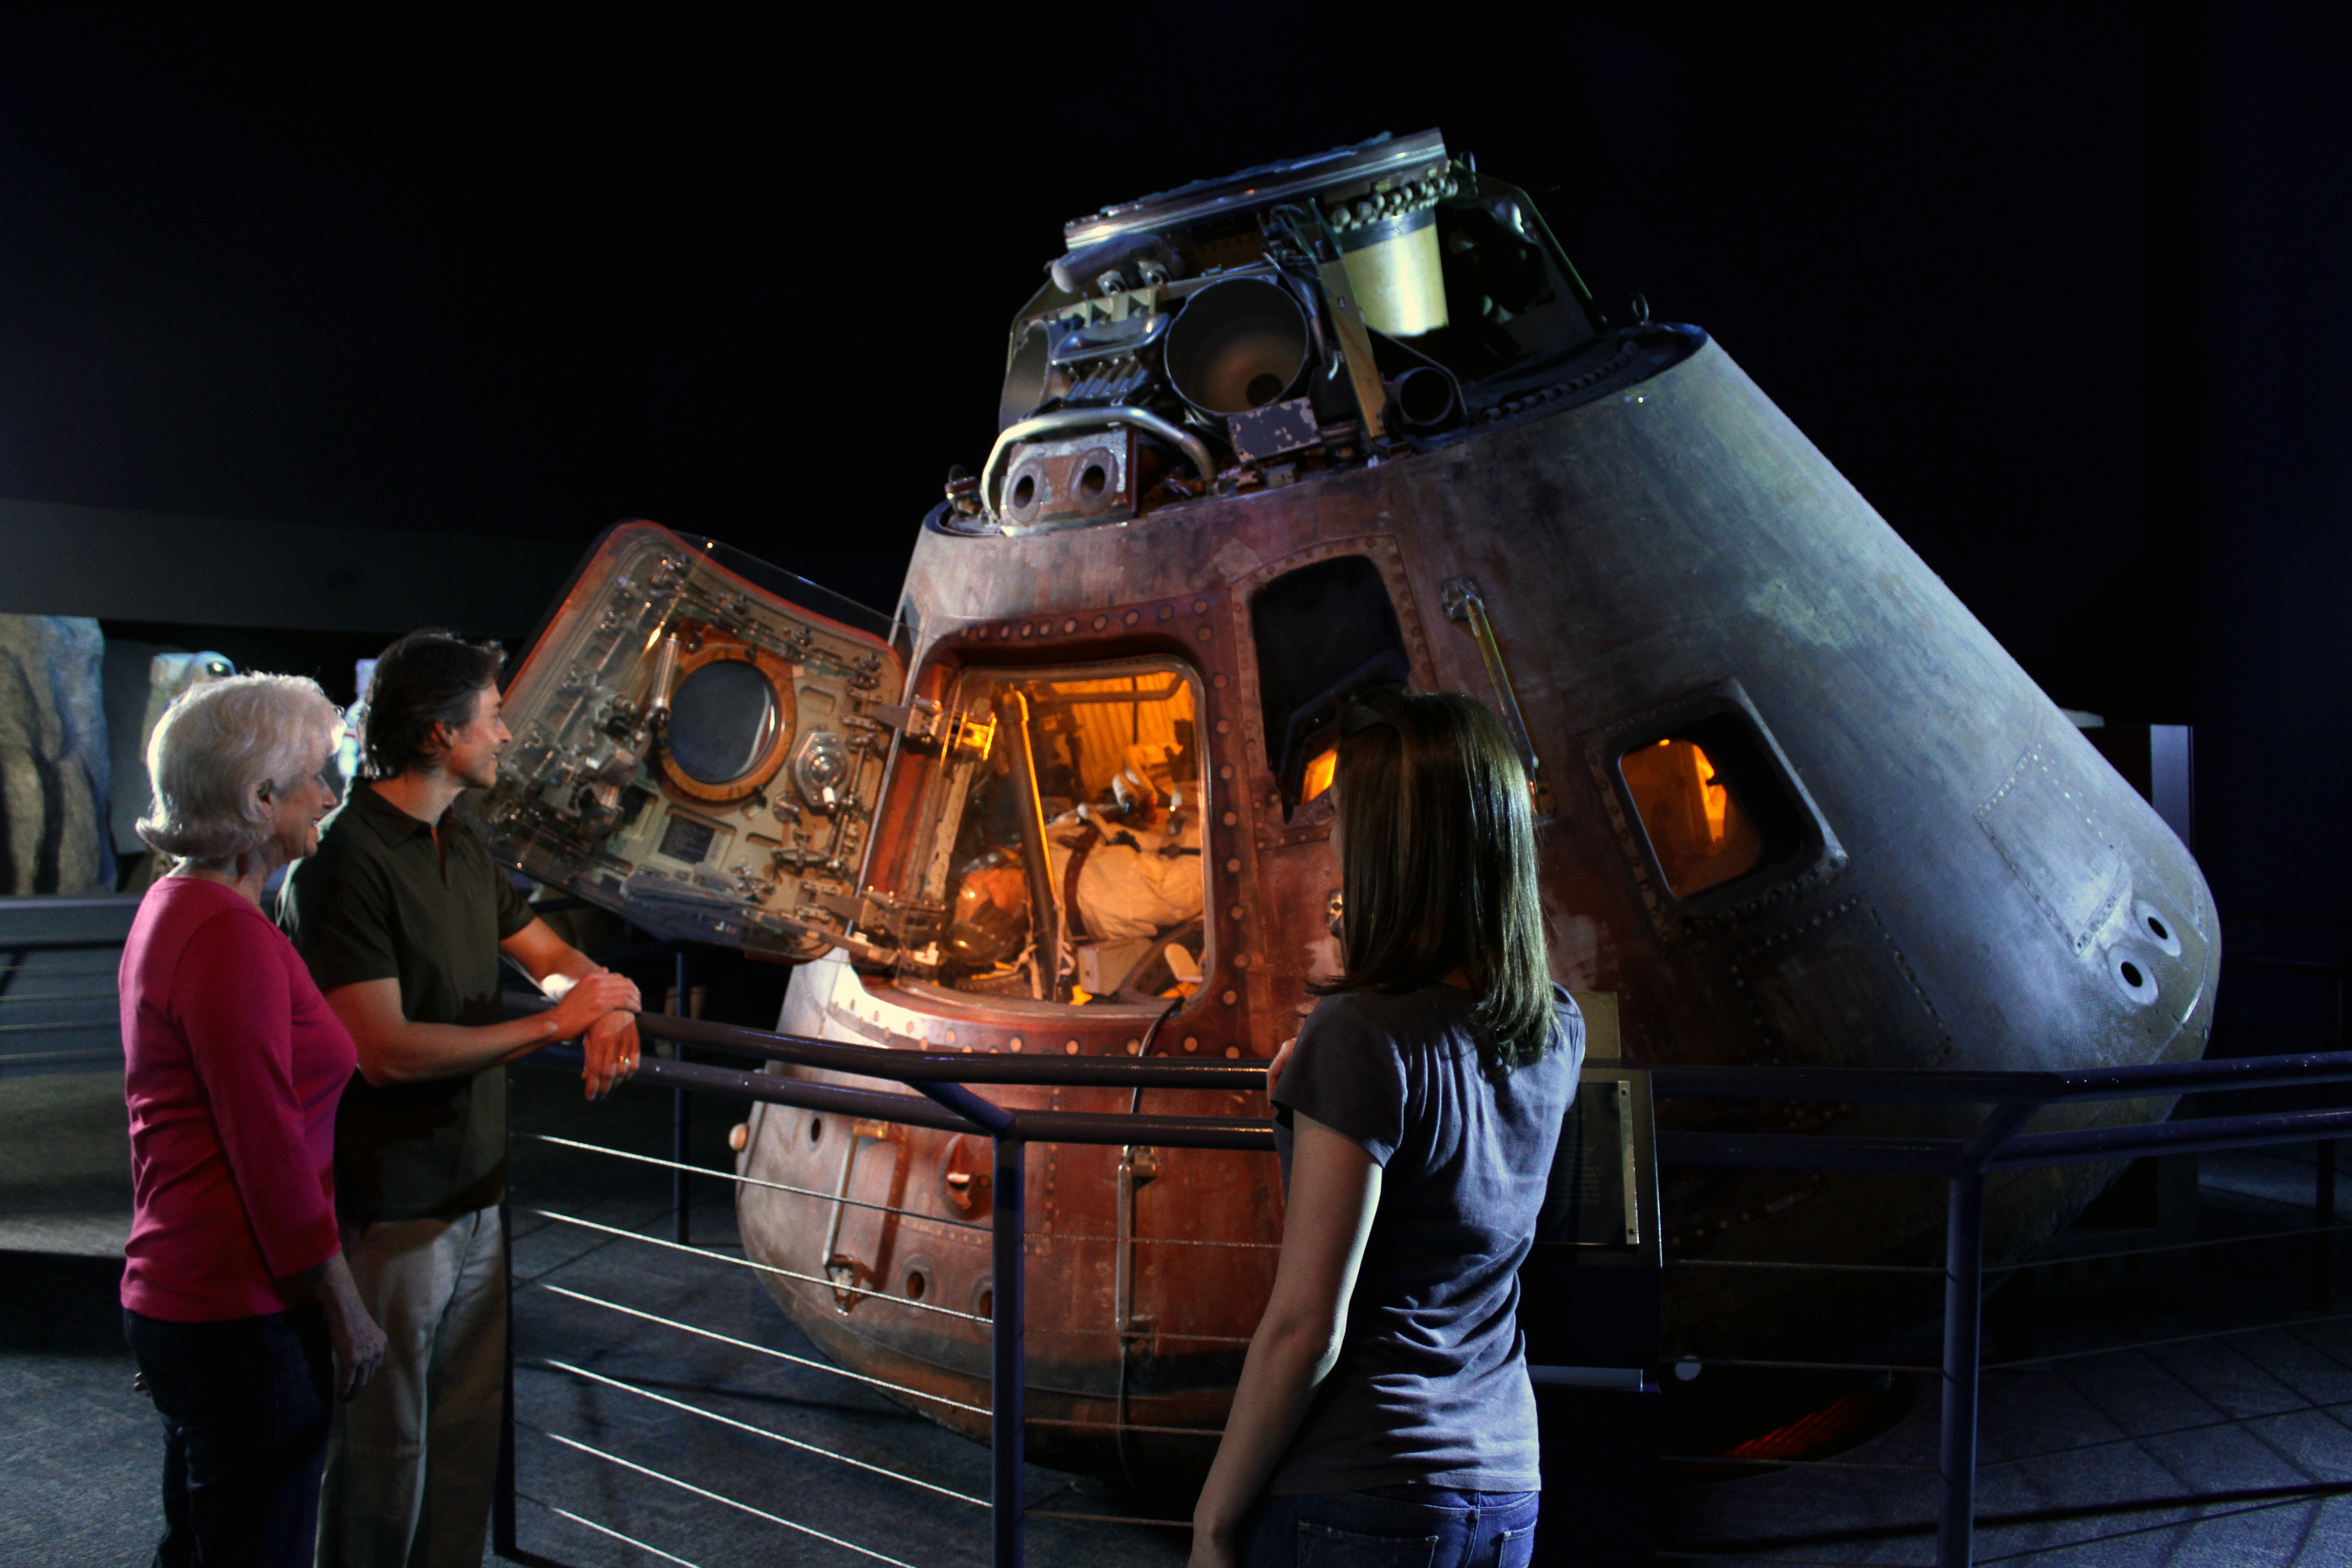 Houston Apollo Command Module 17 (page 2) - Pics about space